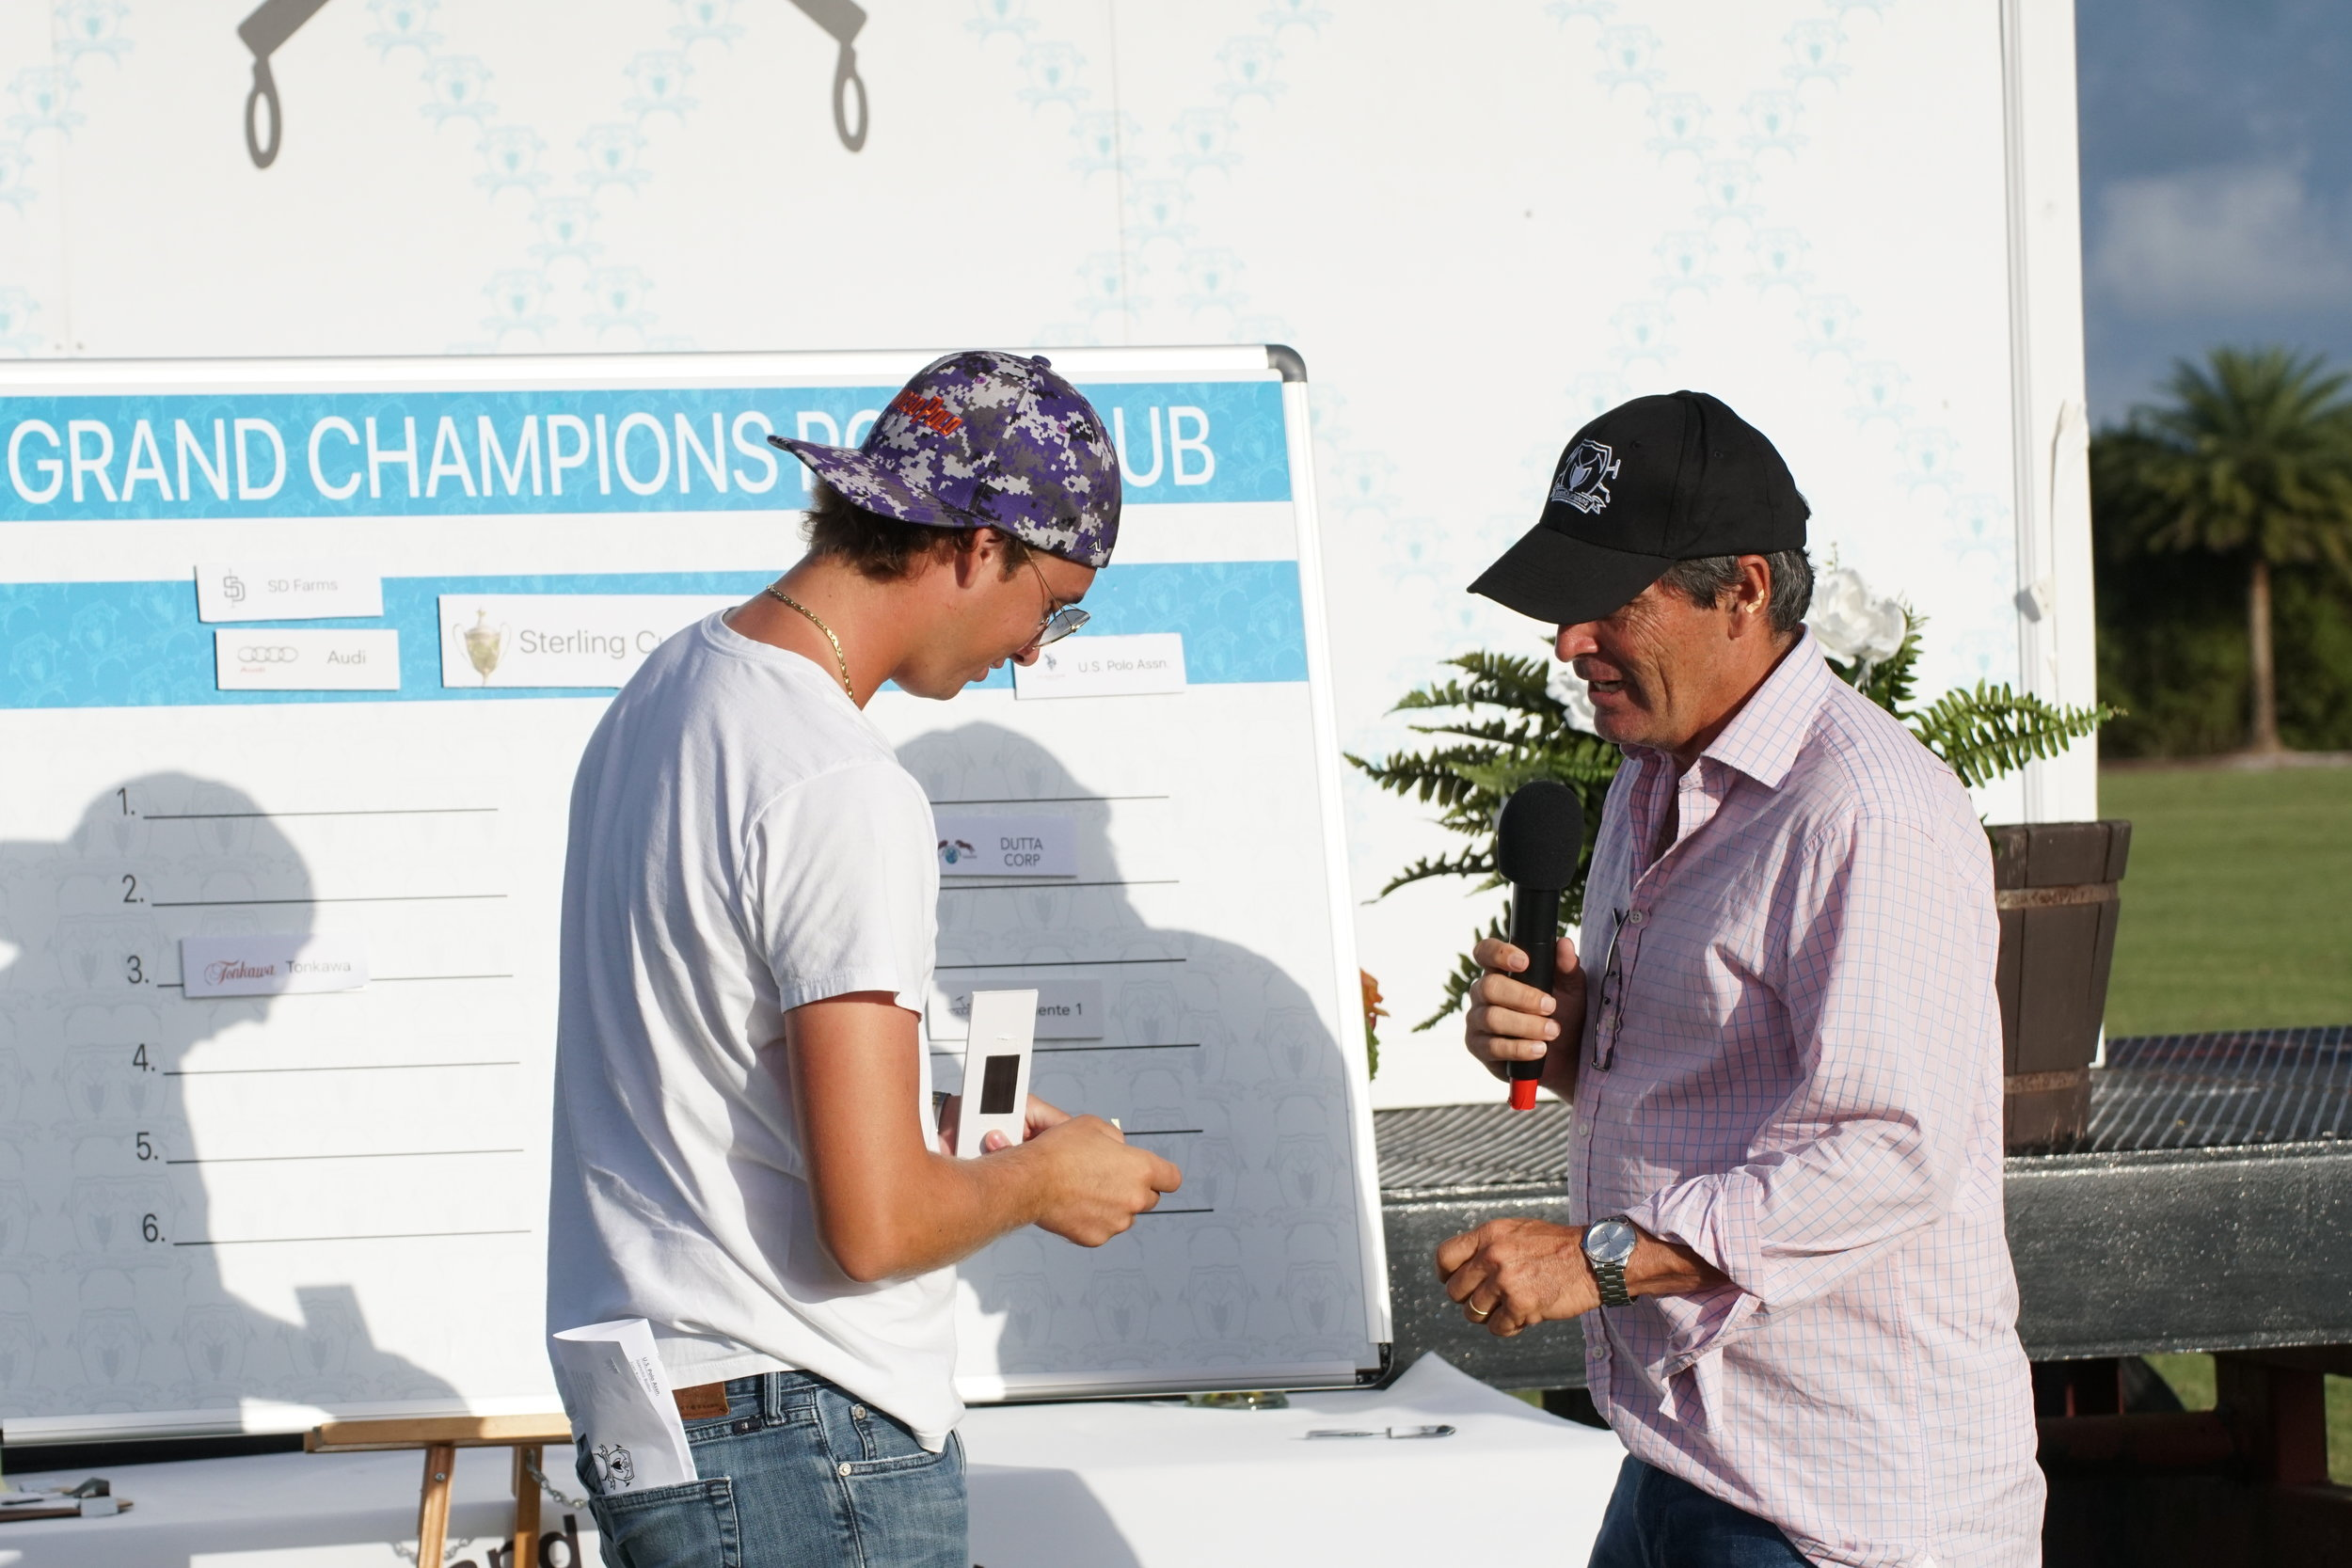 Tony Calle of Travieso draws No. 1 for bracket position. Photo by ChukkerTV